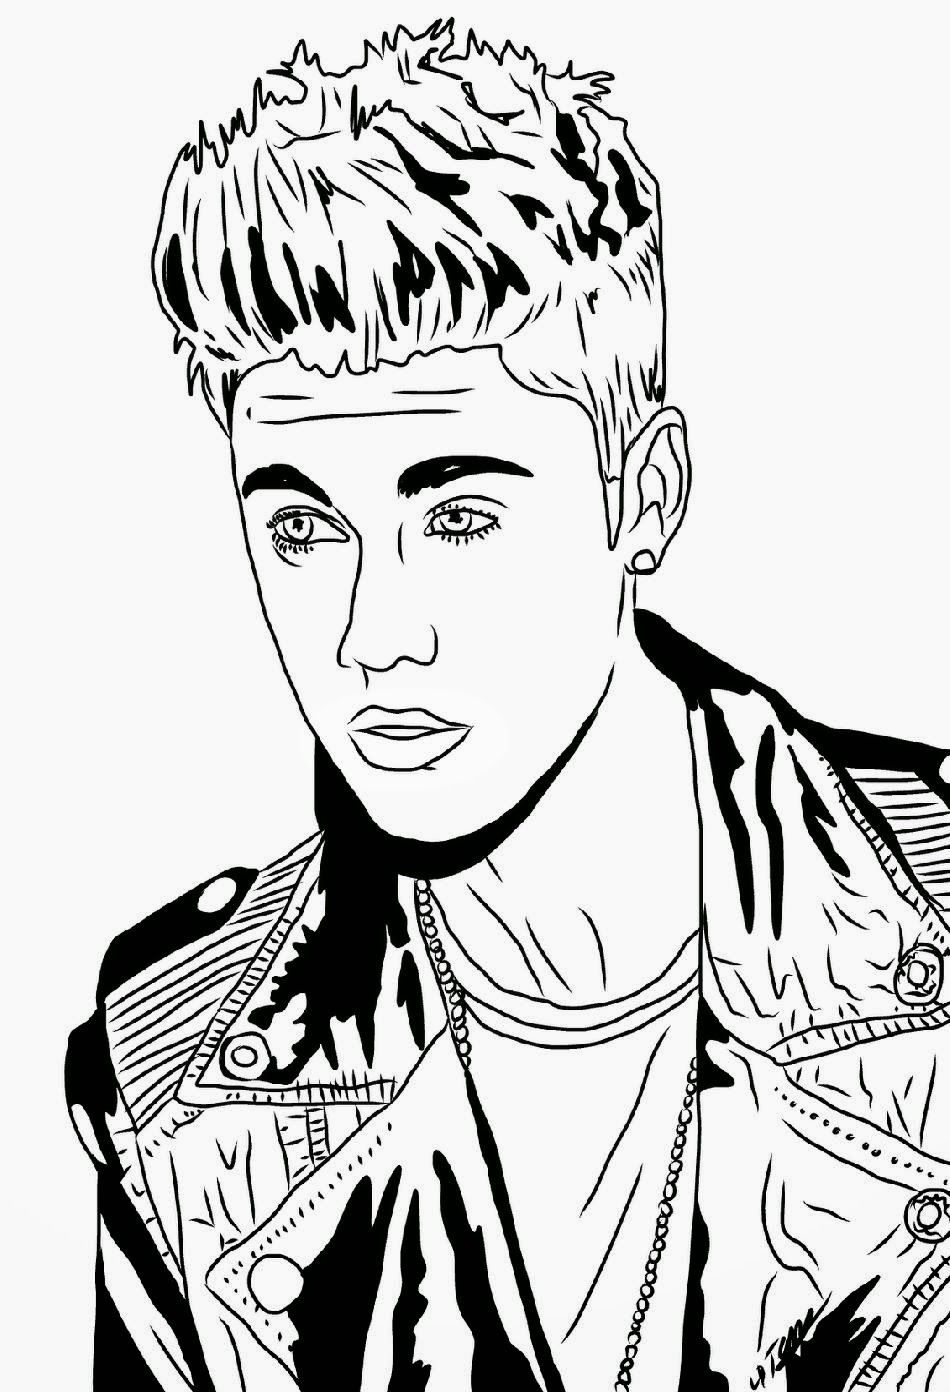 Marvelous Photo of Justin Bieber Coloring Pages | Coloring pages ... | 1392x950